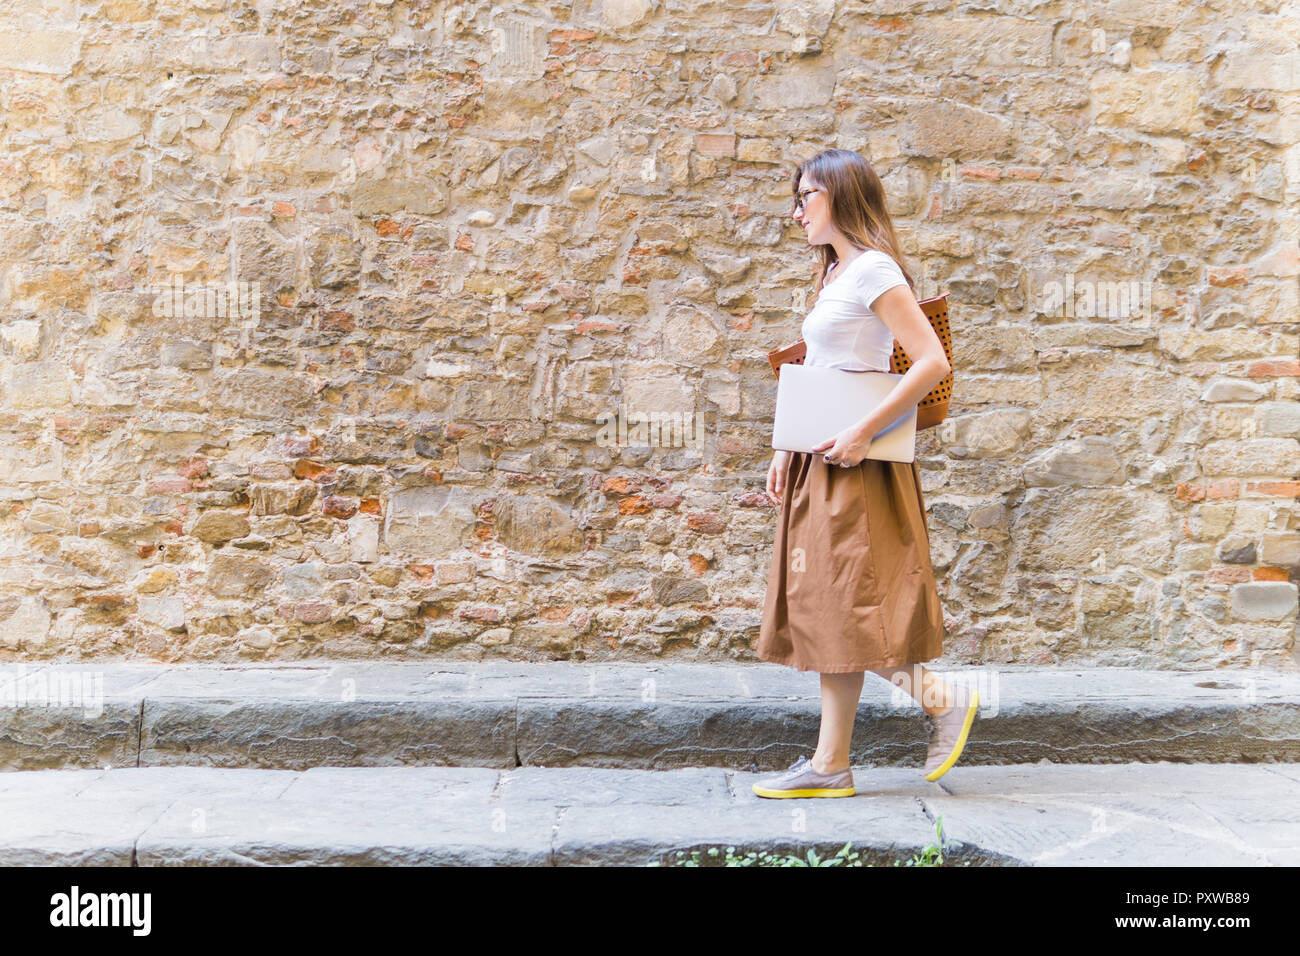 Woman walking along a stone wall carrying laptop - Stock Image